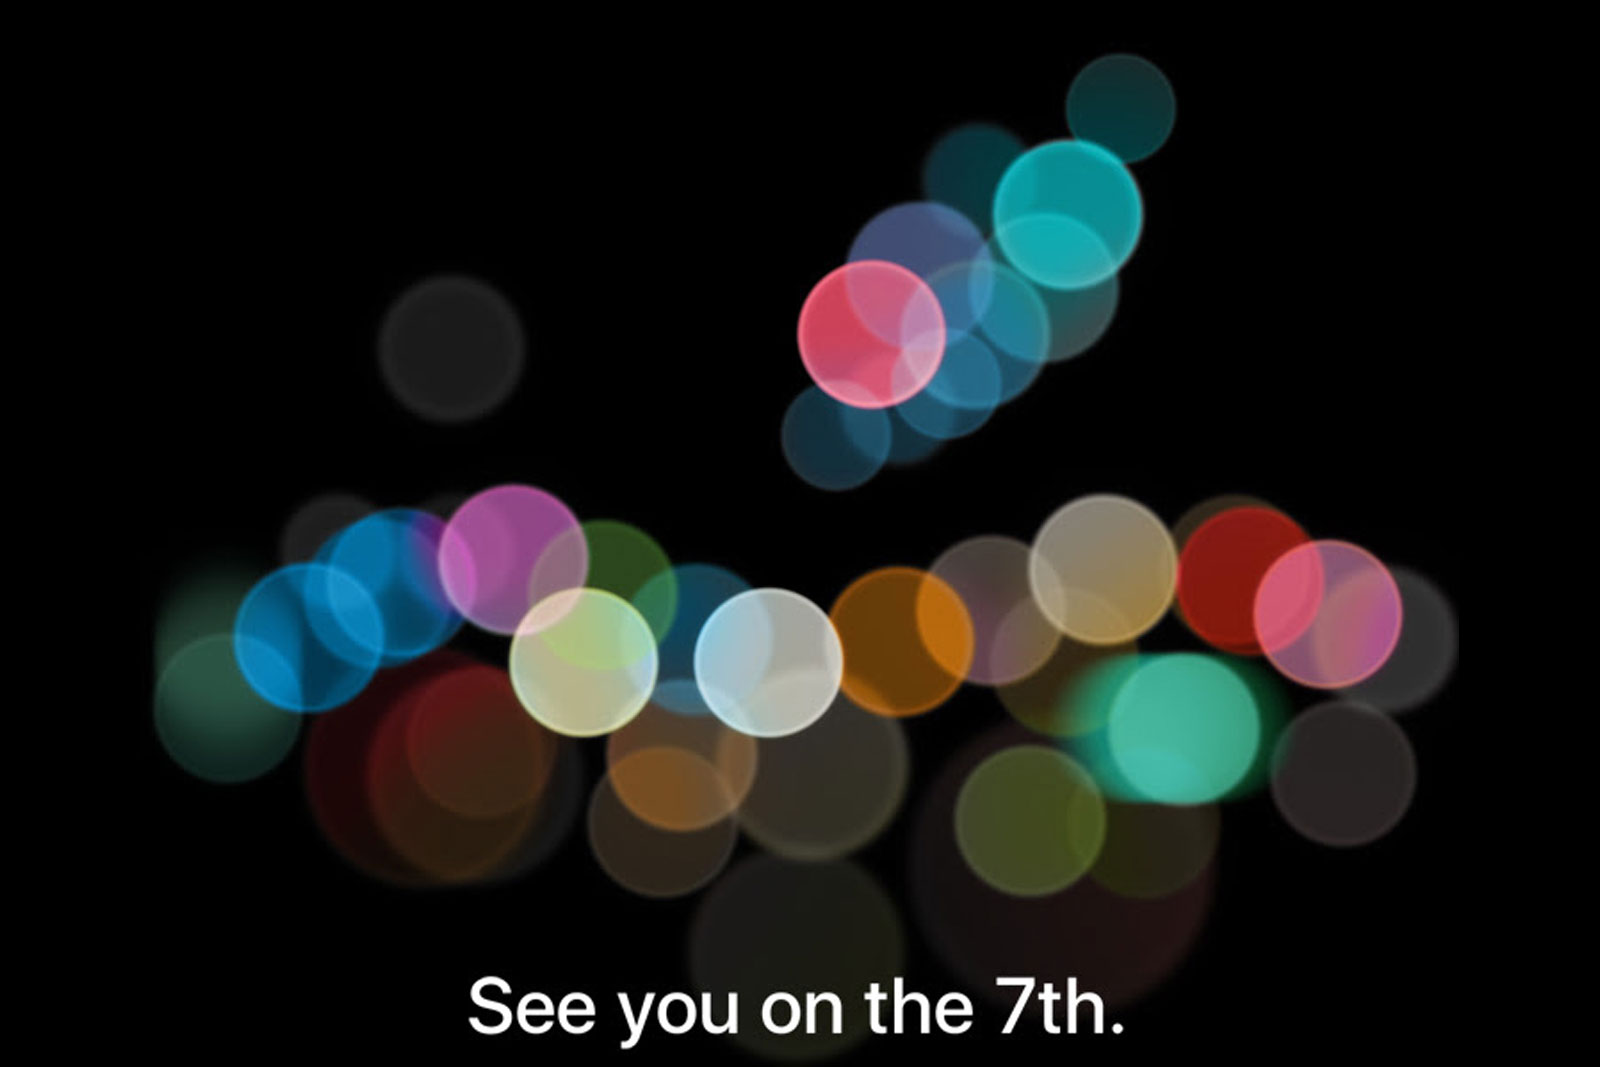 Apple sends out invitations for its September 7th iPhone event